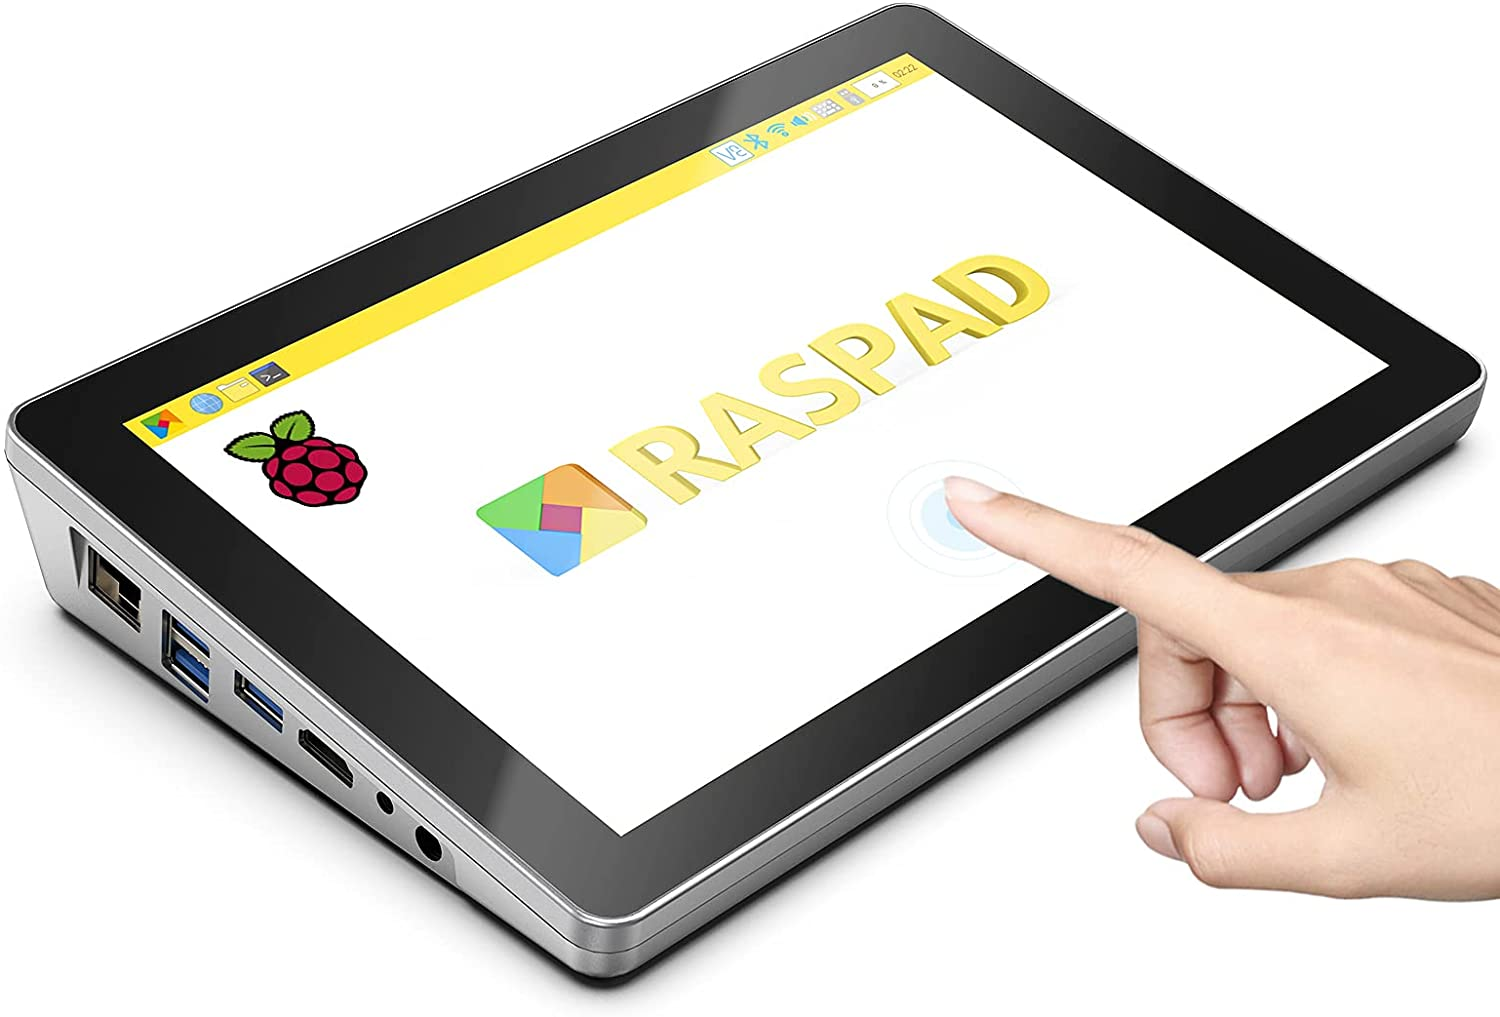 Cheap bargain SunFounder RasPad 3.0 - an All-in-One wit Tablet Pi 4B sale Raspberry